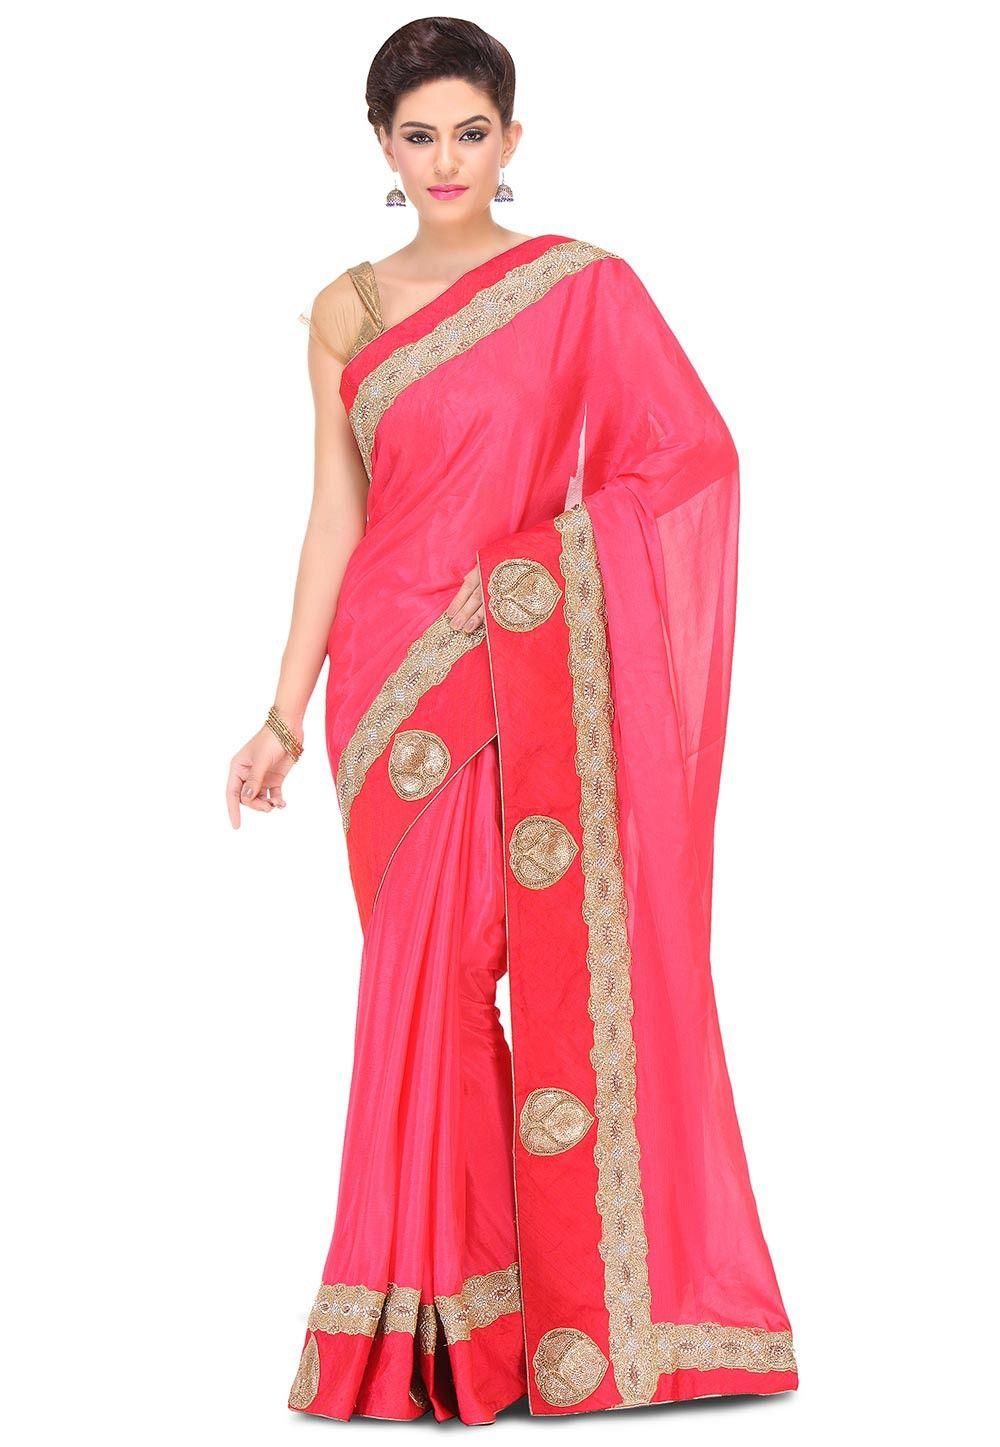 Hand Embroidered Crepe Chiffon Saree in Fuchsia